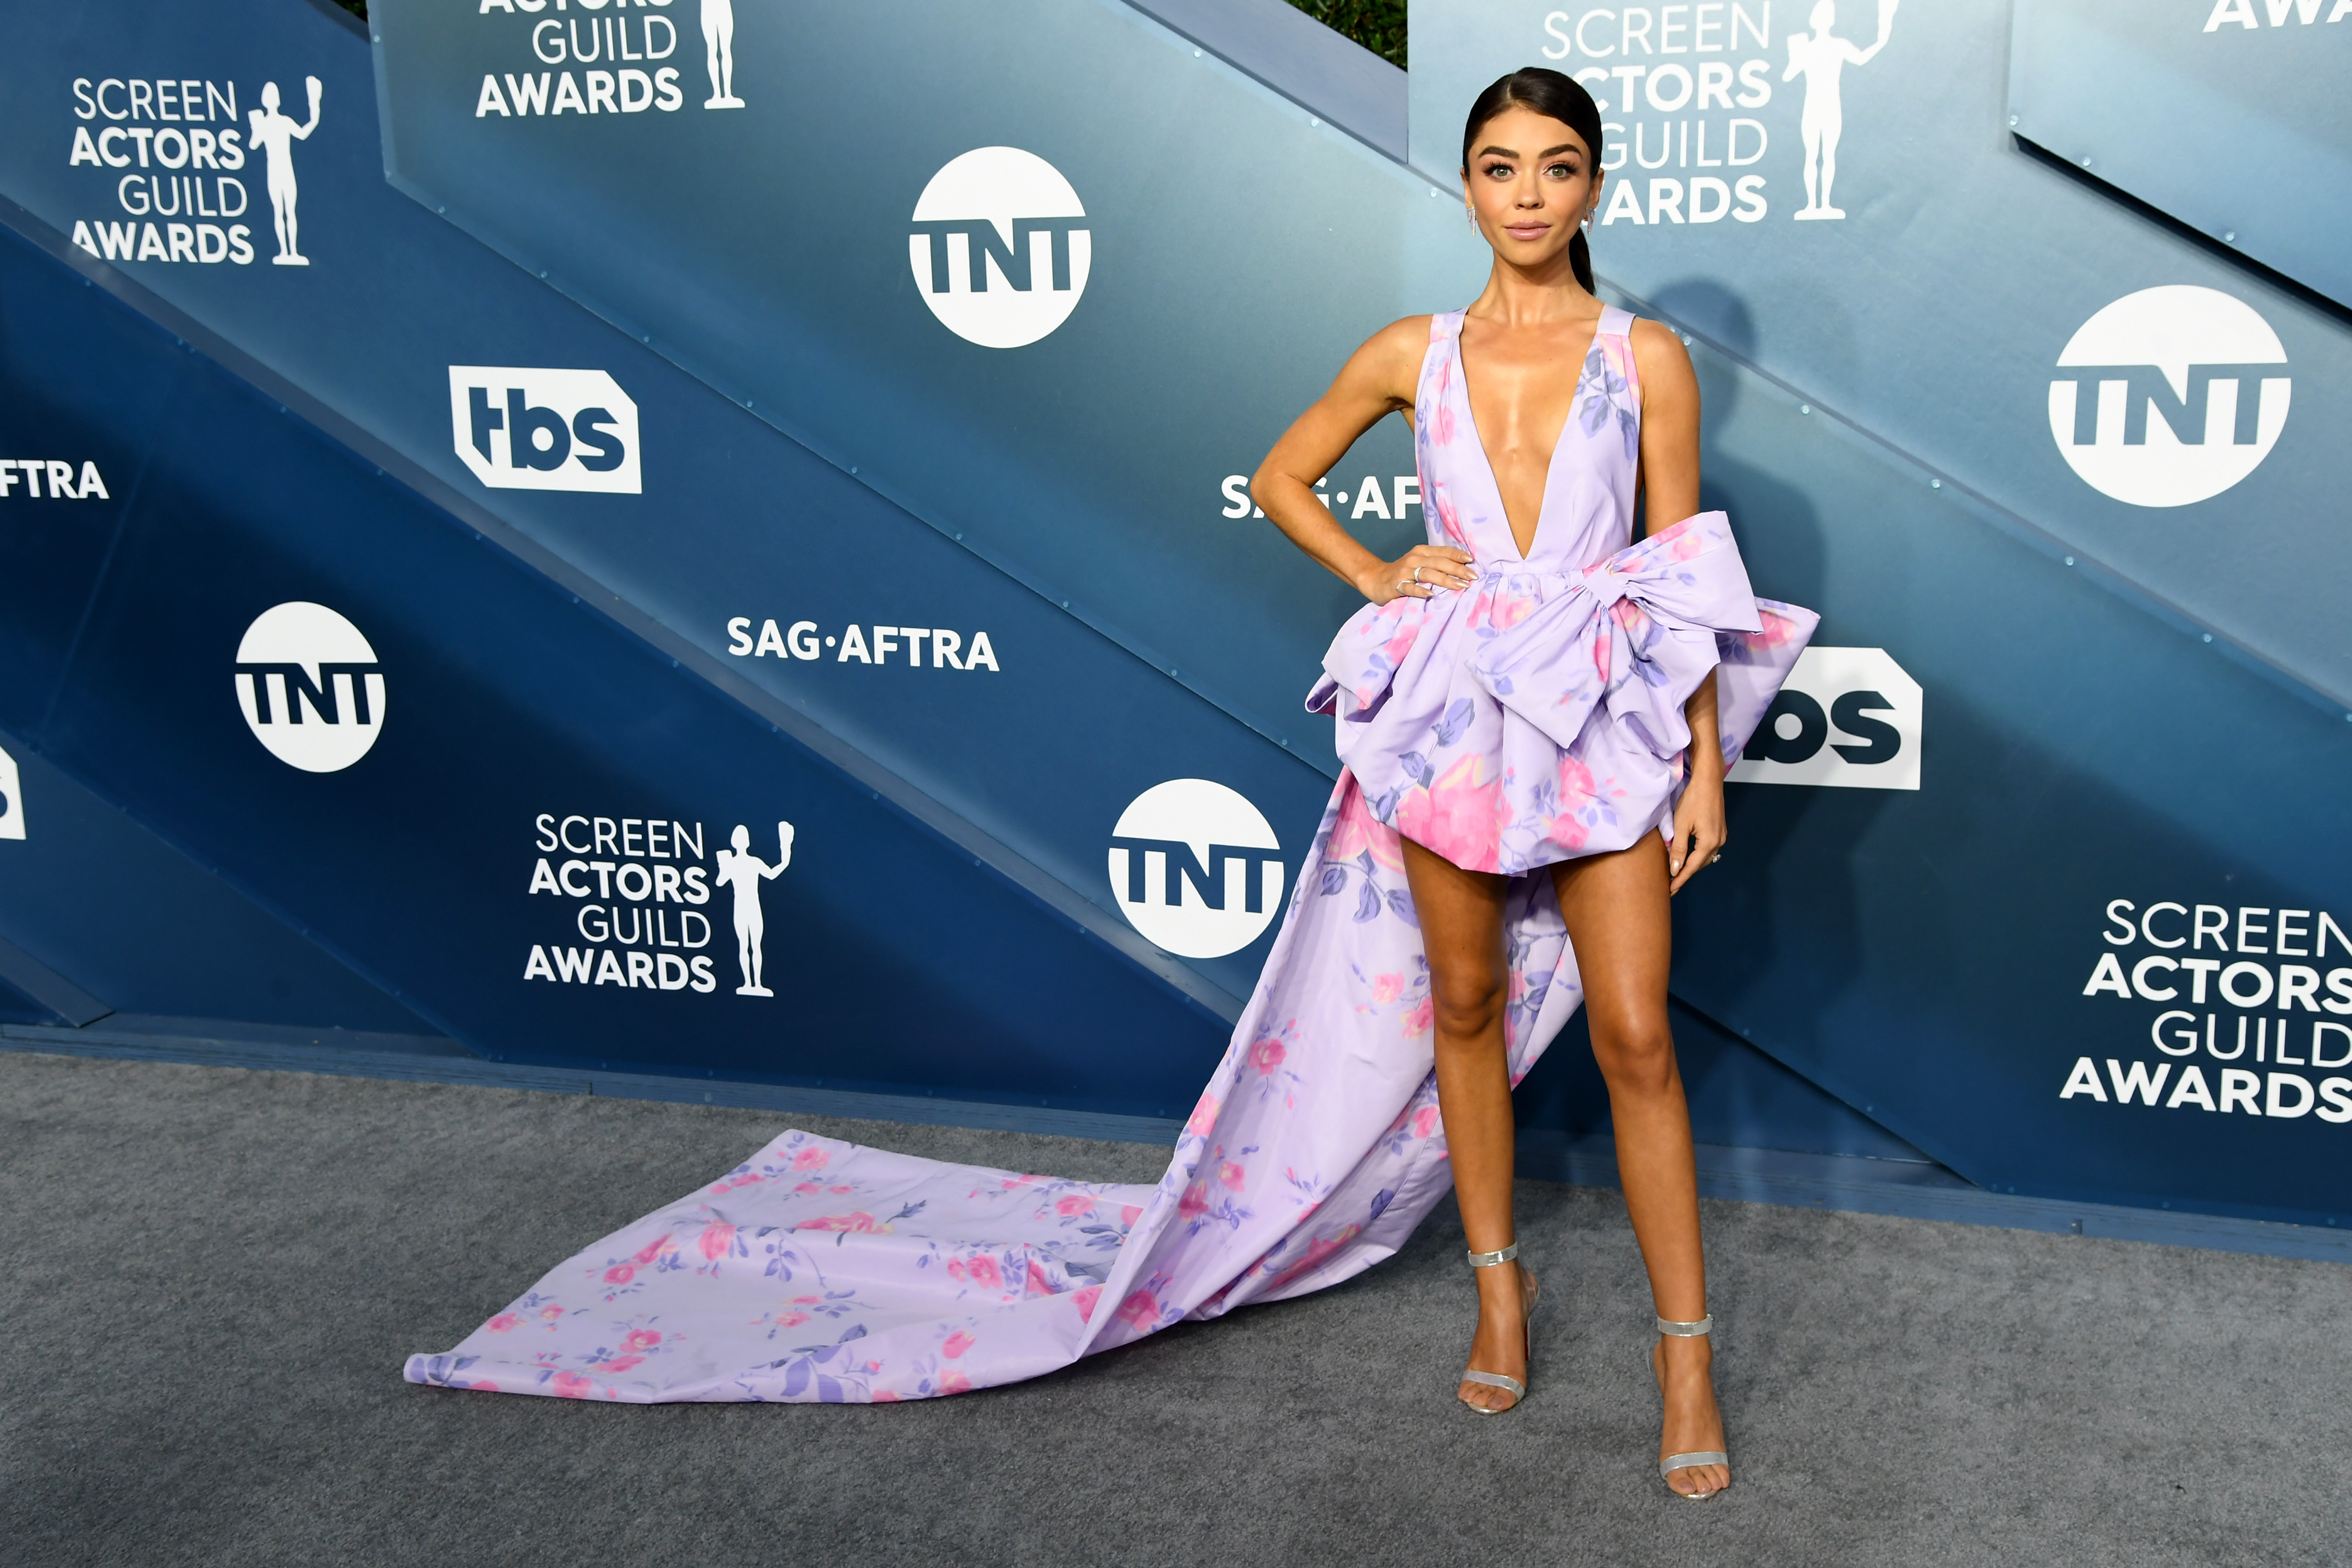 LOS ANGELES, CALIFORNIA - JANUARY 19: Sarah Hyland attends the 26th Annual Screen ActorsGuild Awards at The Shrine Auditorium on January 19, 2020 in Los Angeles, California. (Photo by Jeff Kravitz/FilmMagic)